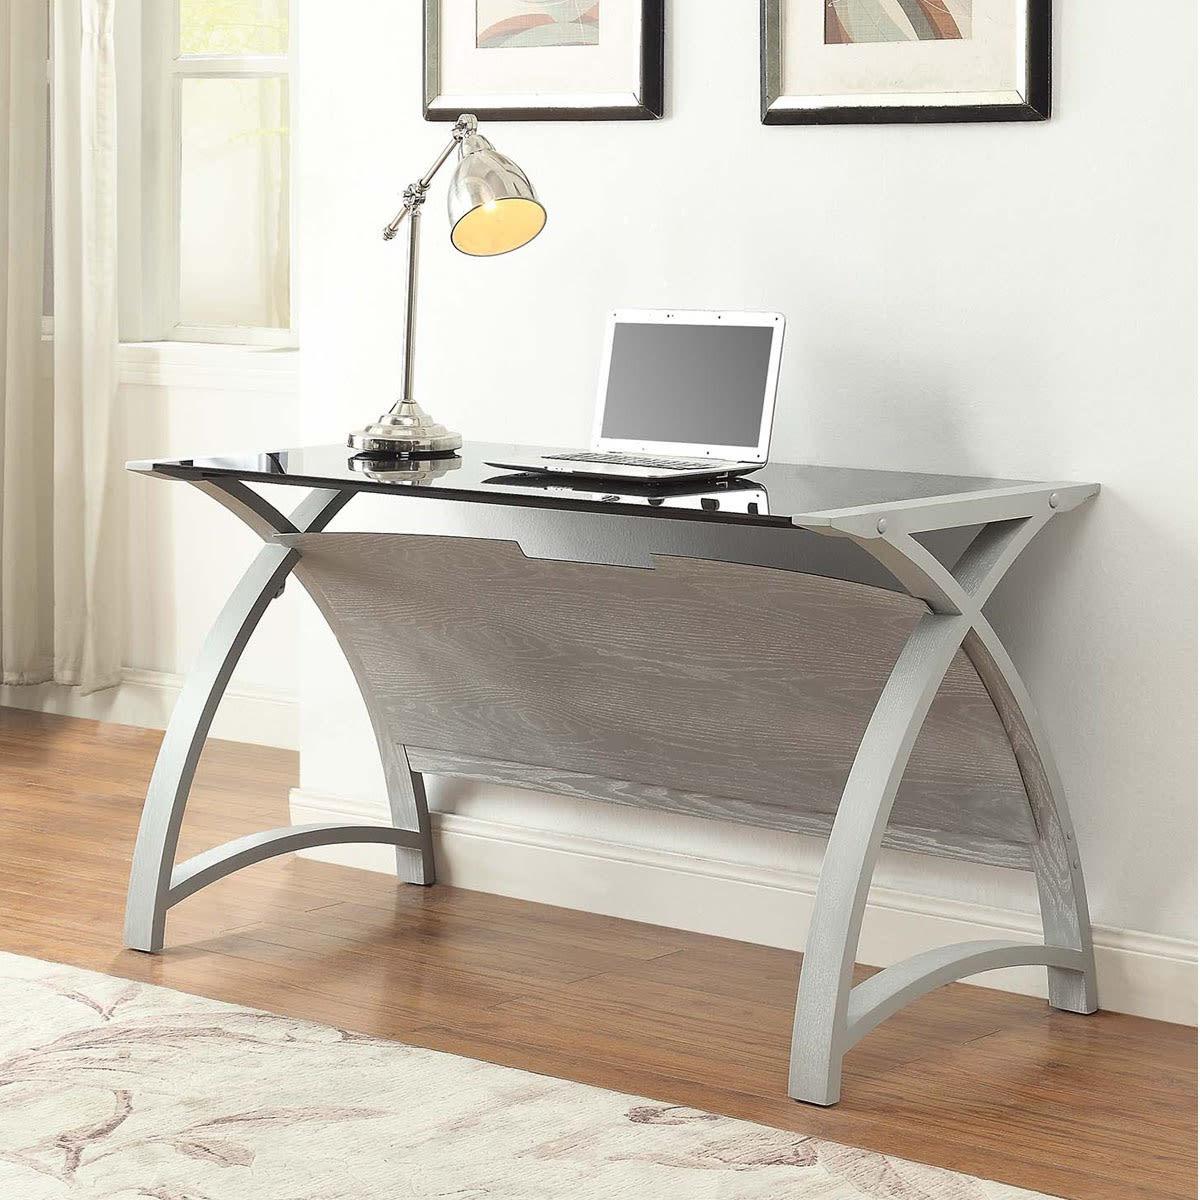 Ash Furniture Store: Curve Home Office Grey Ash Table (130cm) Was £374.00 Now £